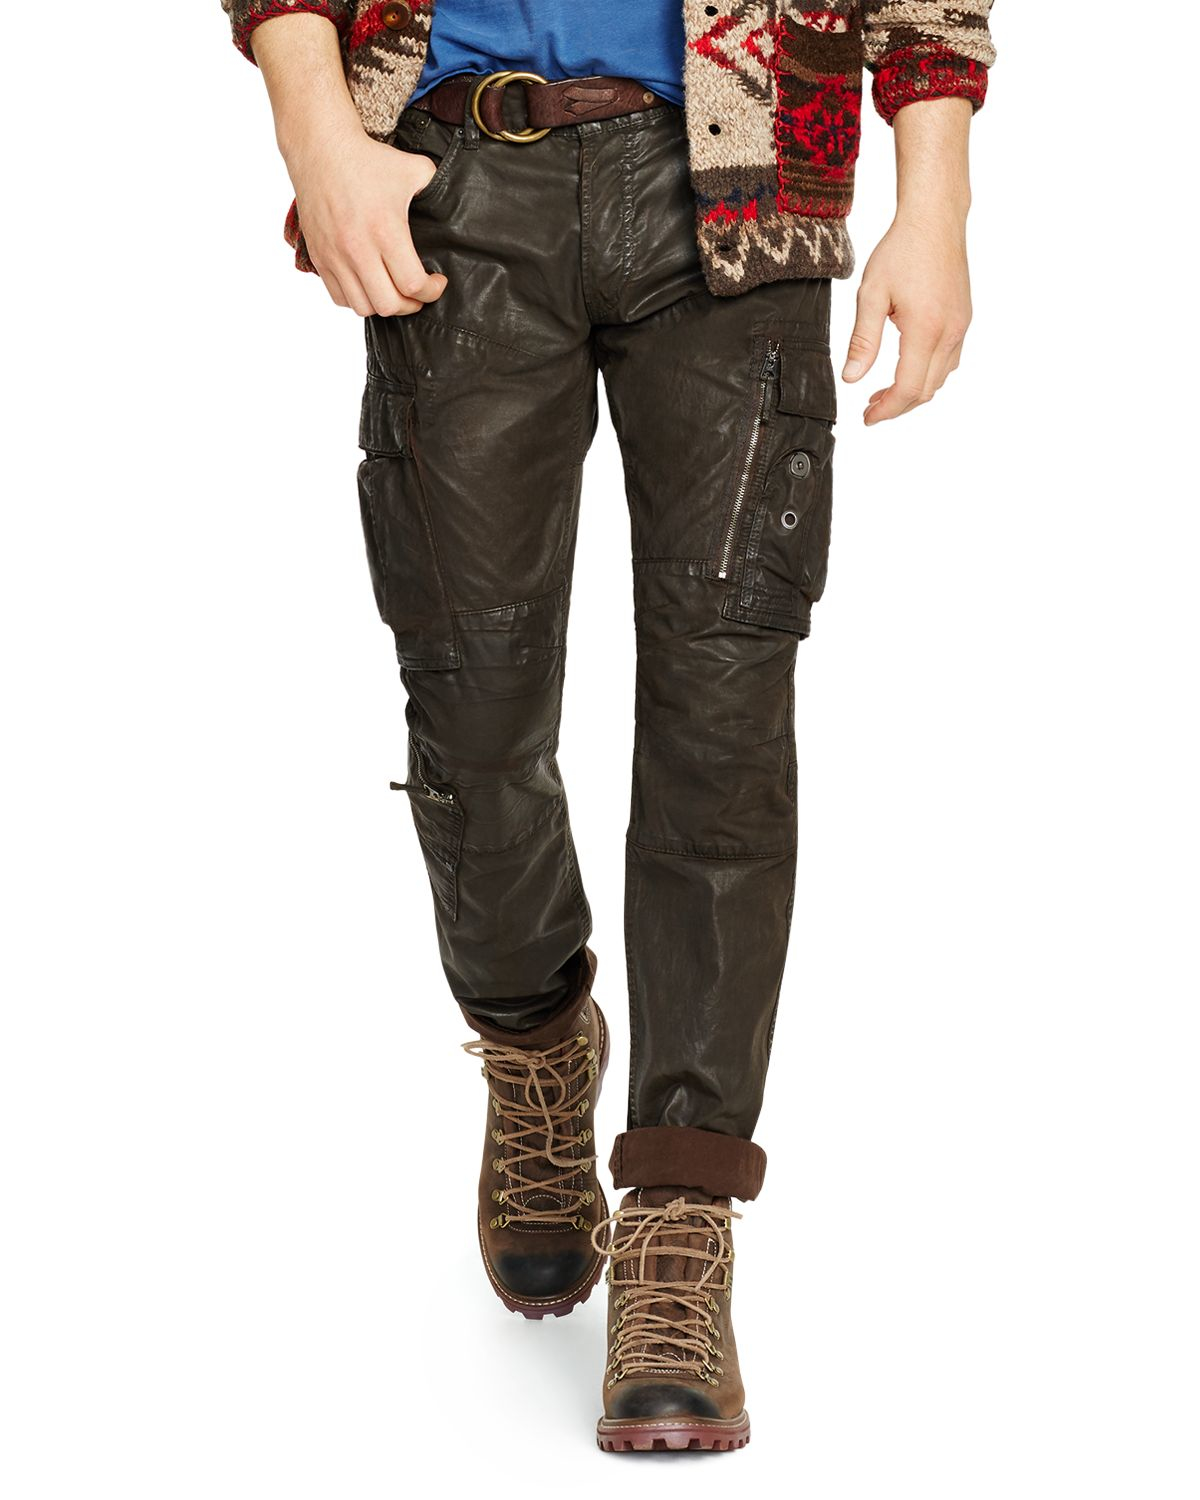 lyst ralph lauren polo coated cargo jeans in brown for men. Black Bedroom Furniture Sets. Home Design Ideas